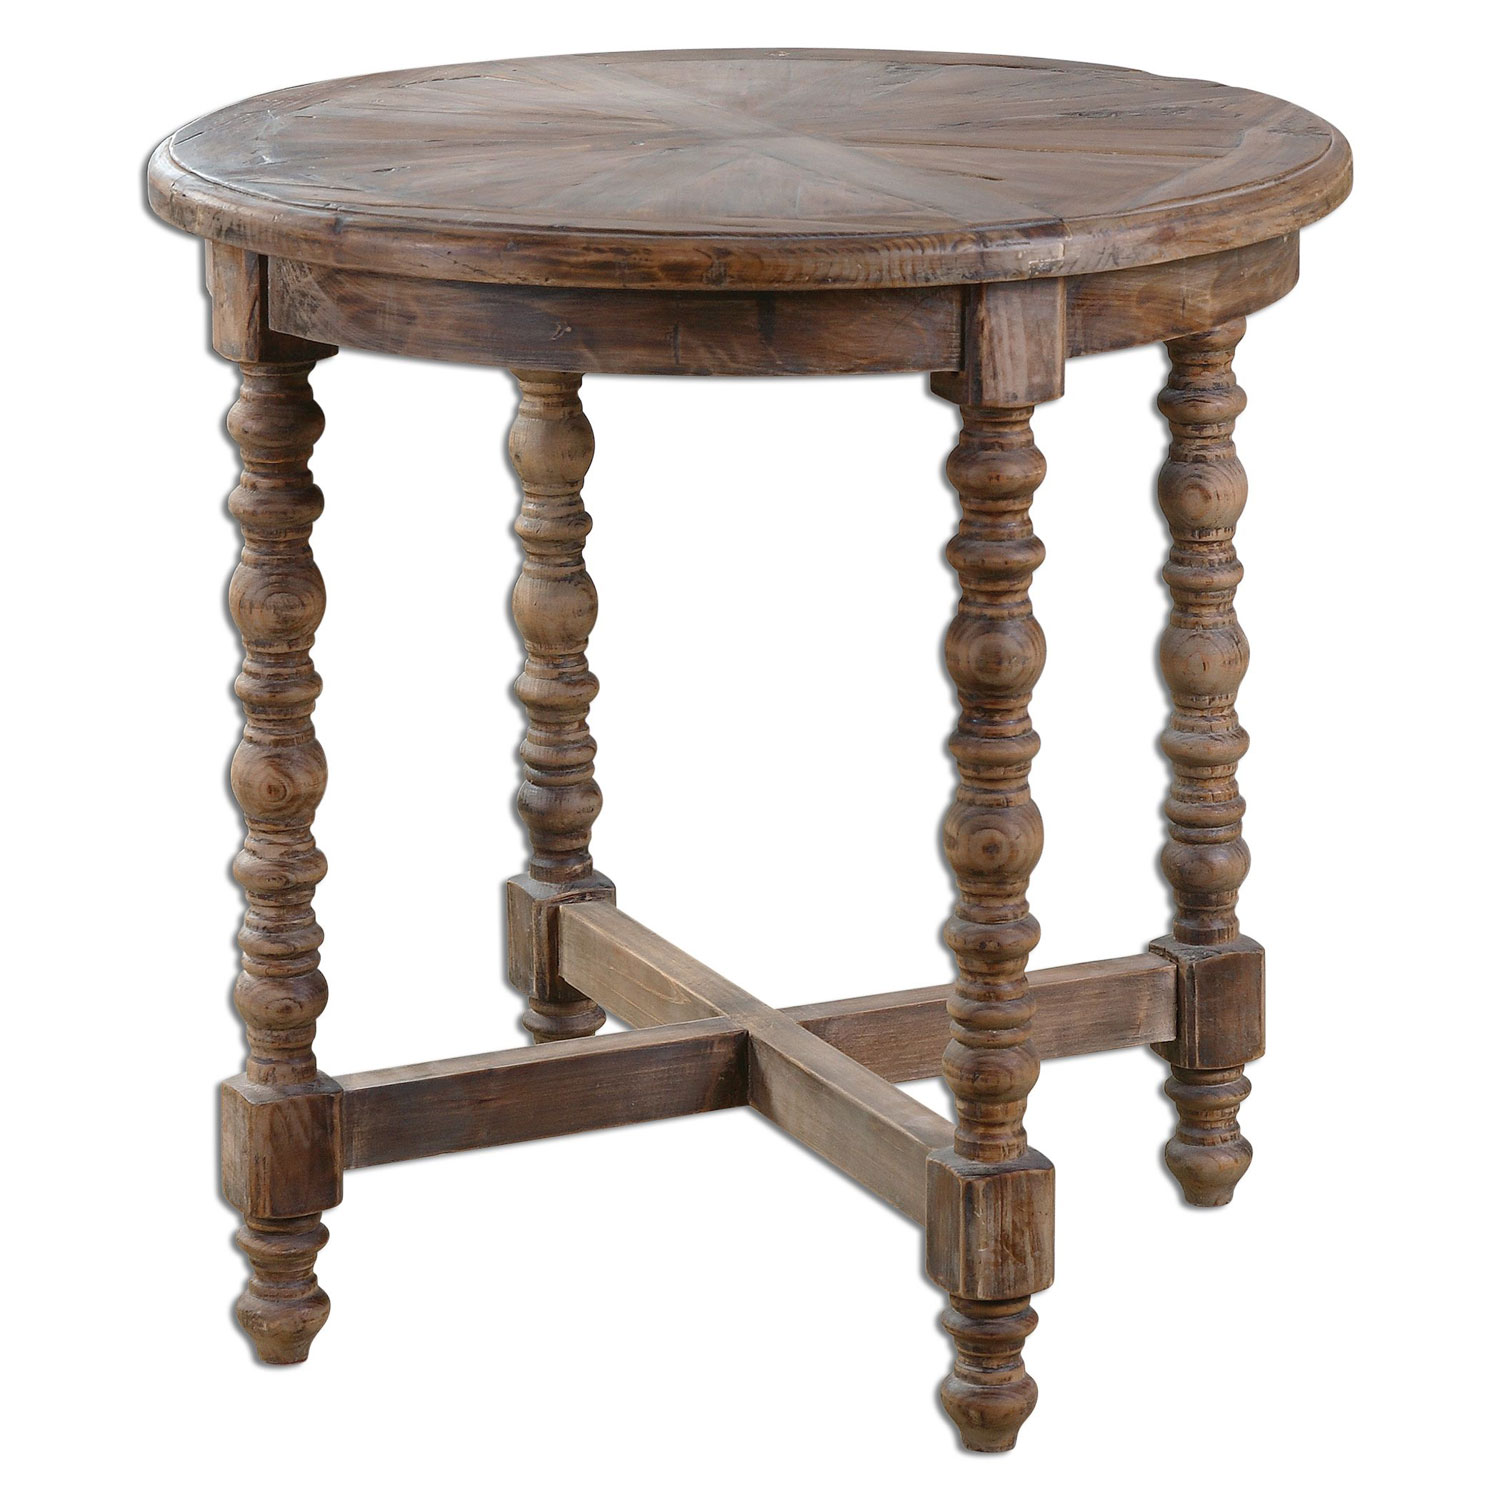 probably perfect nice antique wood end tables mira road uttermost samuelle reclaimed fir table bellacor hover zoom black rustic farmhouse decor dark grey bedside lamps small round